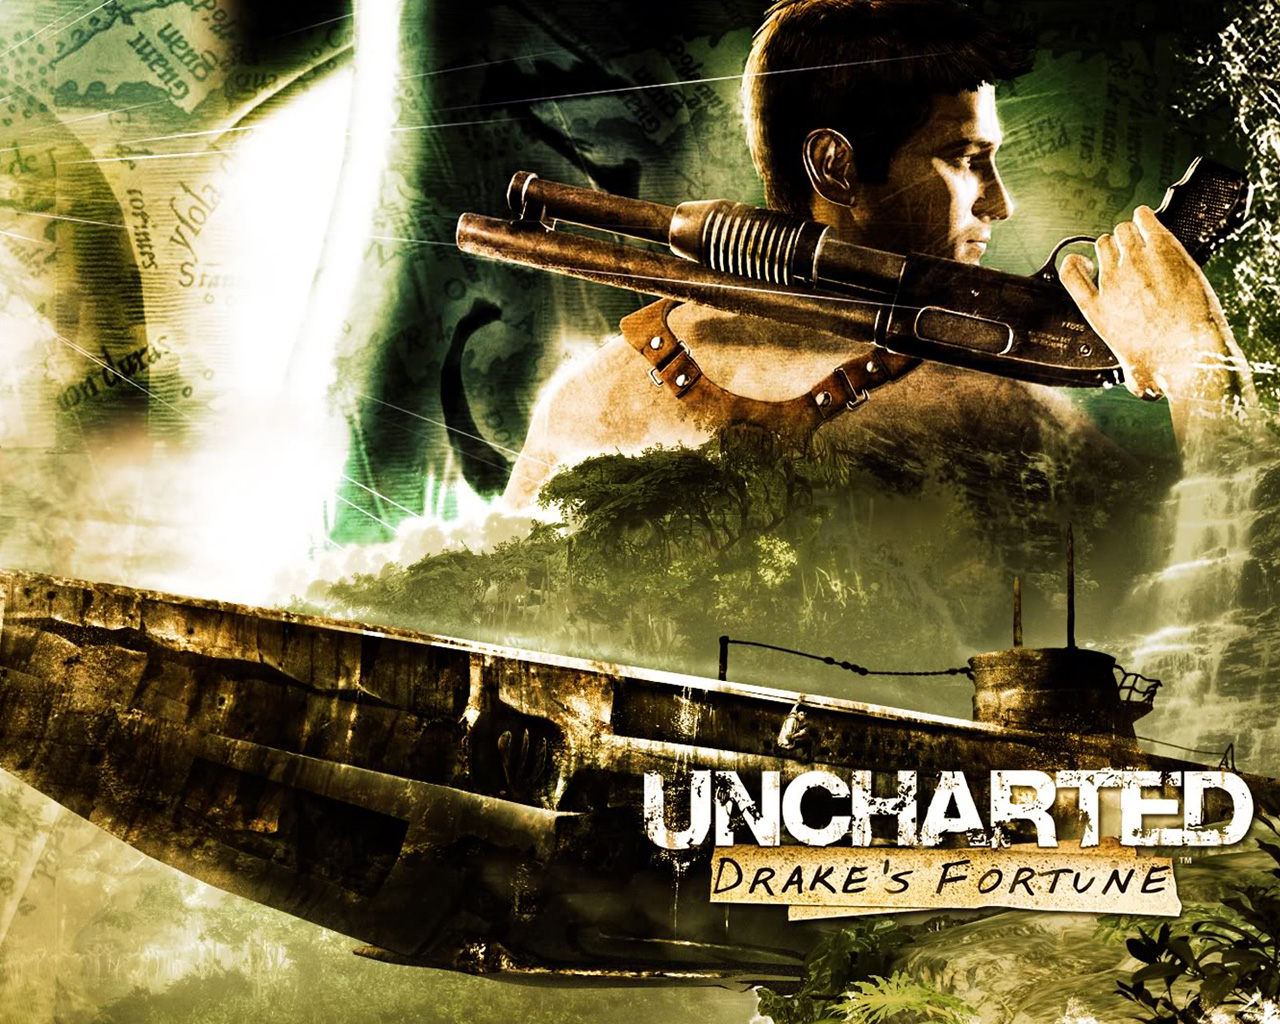 Free Uncharted: Drake's Fortune Wallpaper in 1280x1024